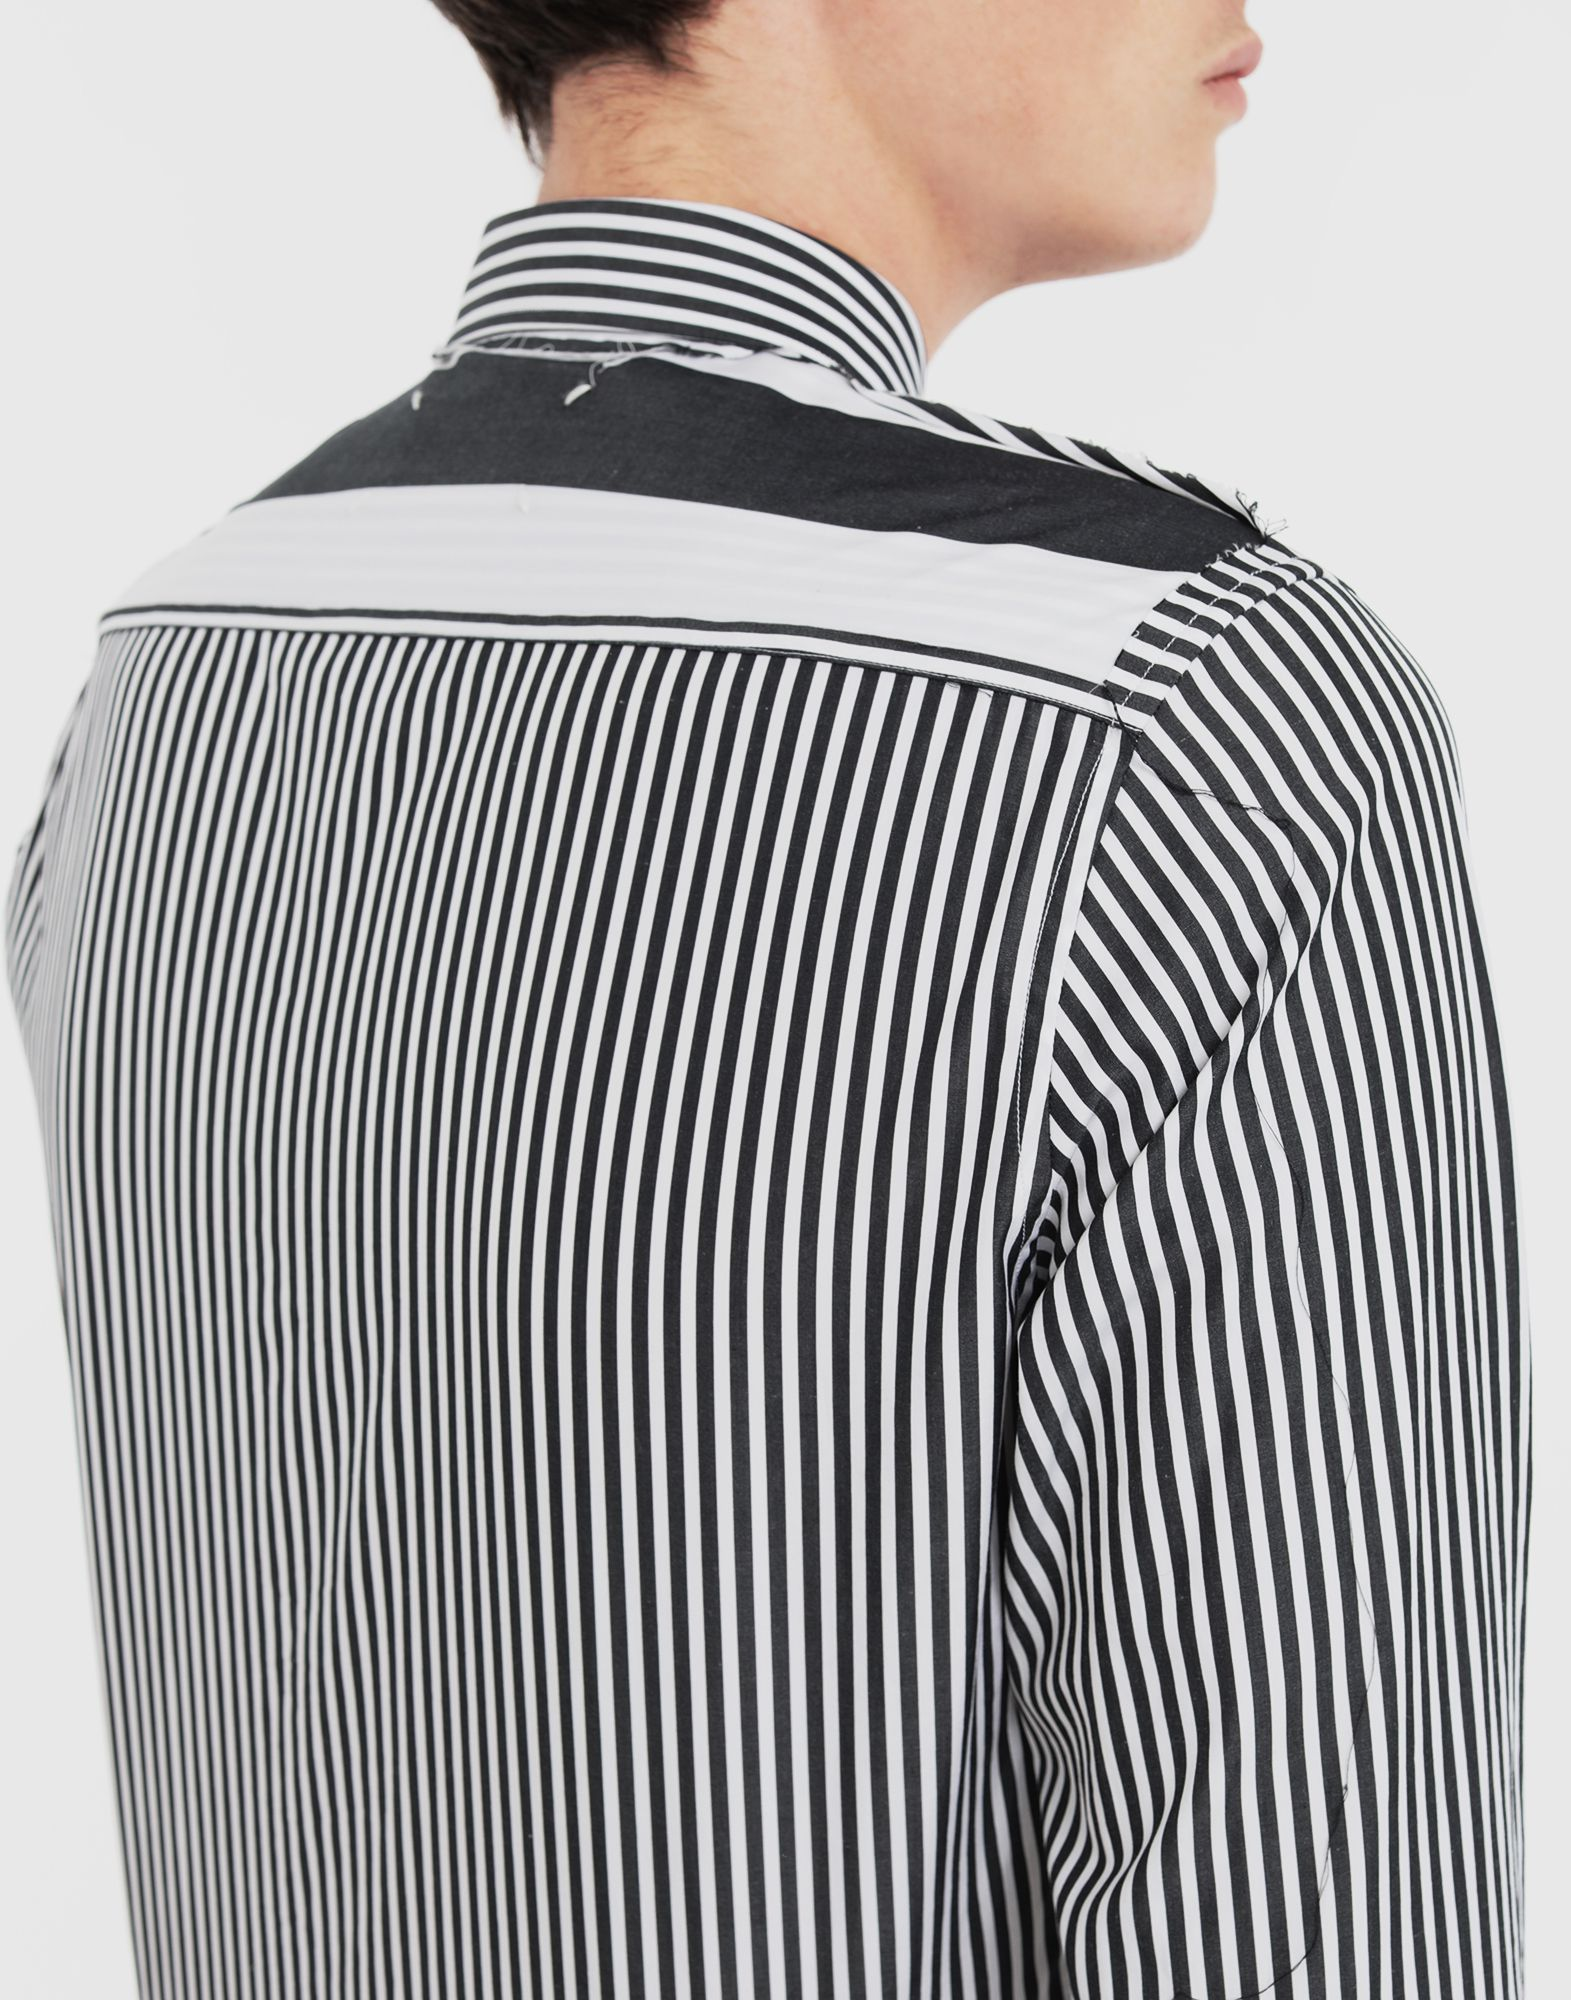 MAISON MARGIELA Décortiqué striped shirt Long sleeve shirt Man b